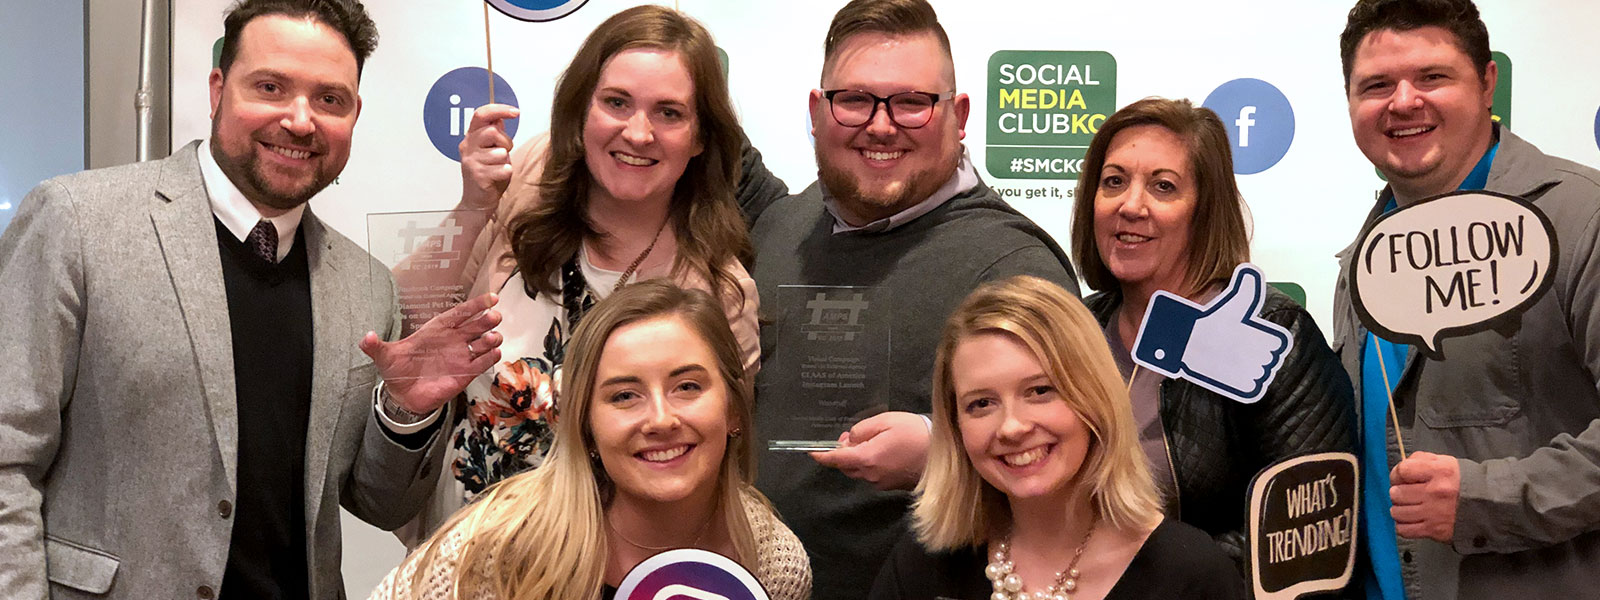 Woodruff Employees Posing with AMPS Awards Plaques | Woodruff